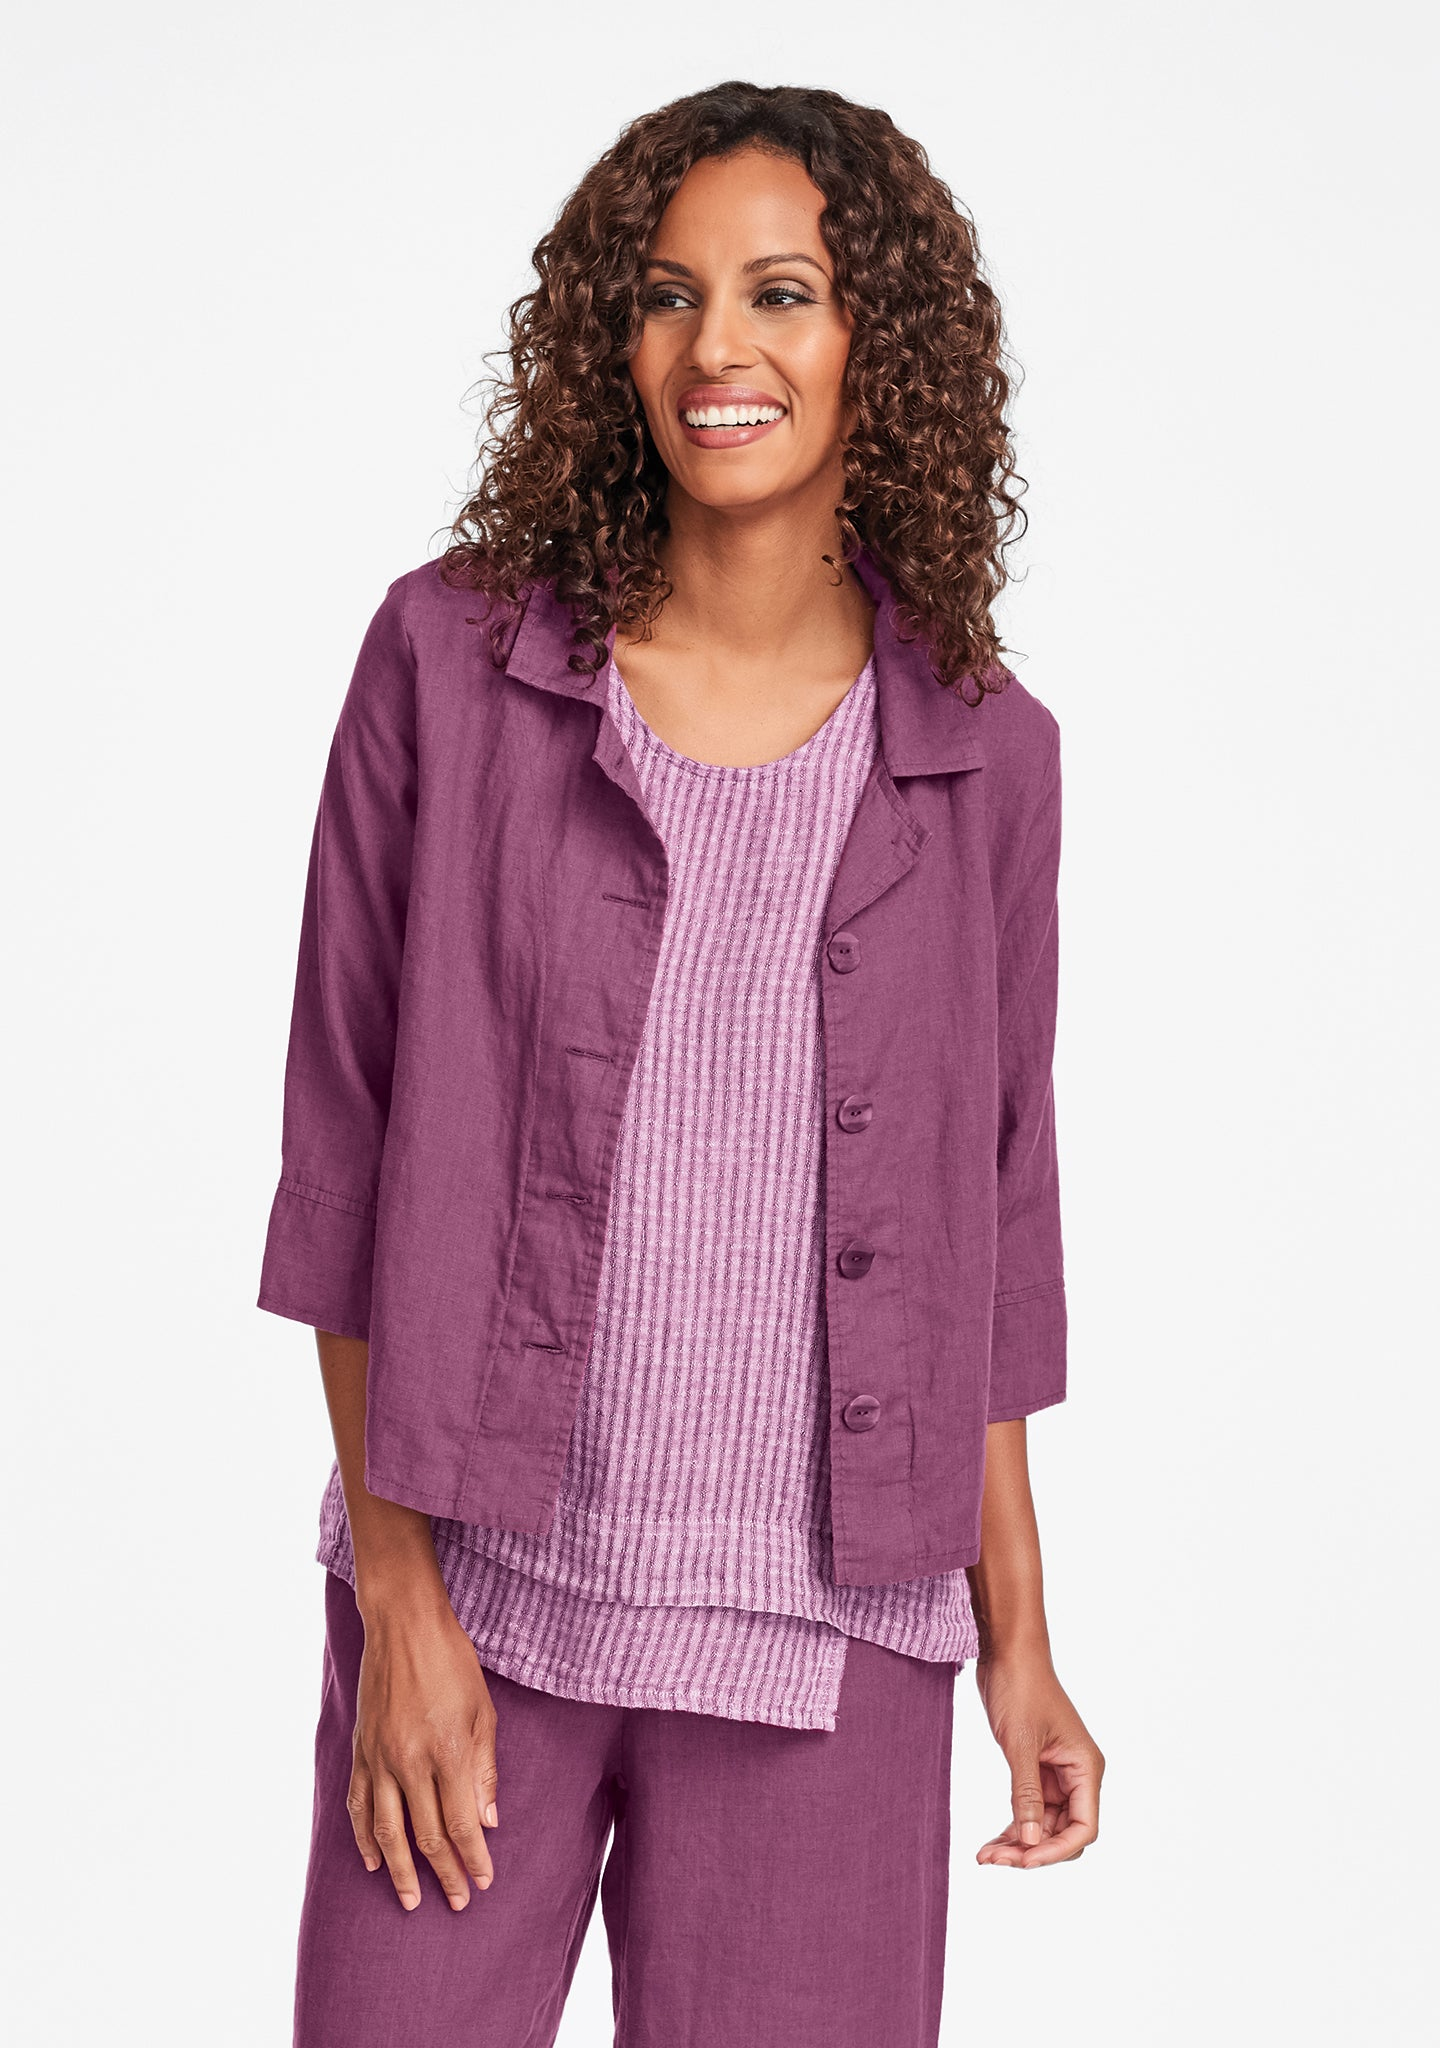 tour jacket linen jacket purple